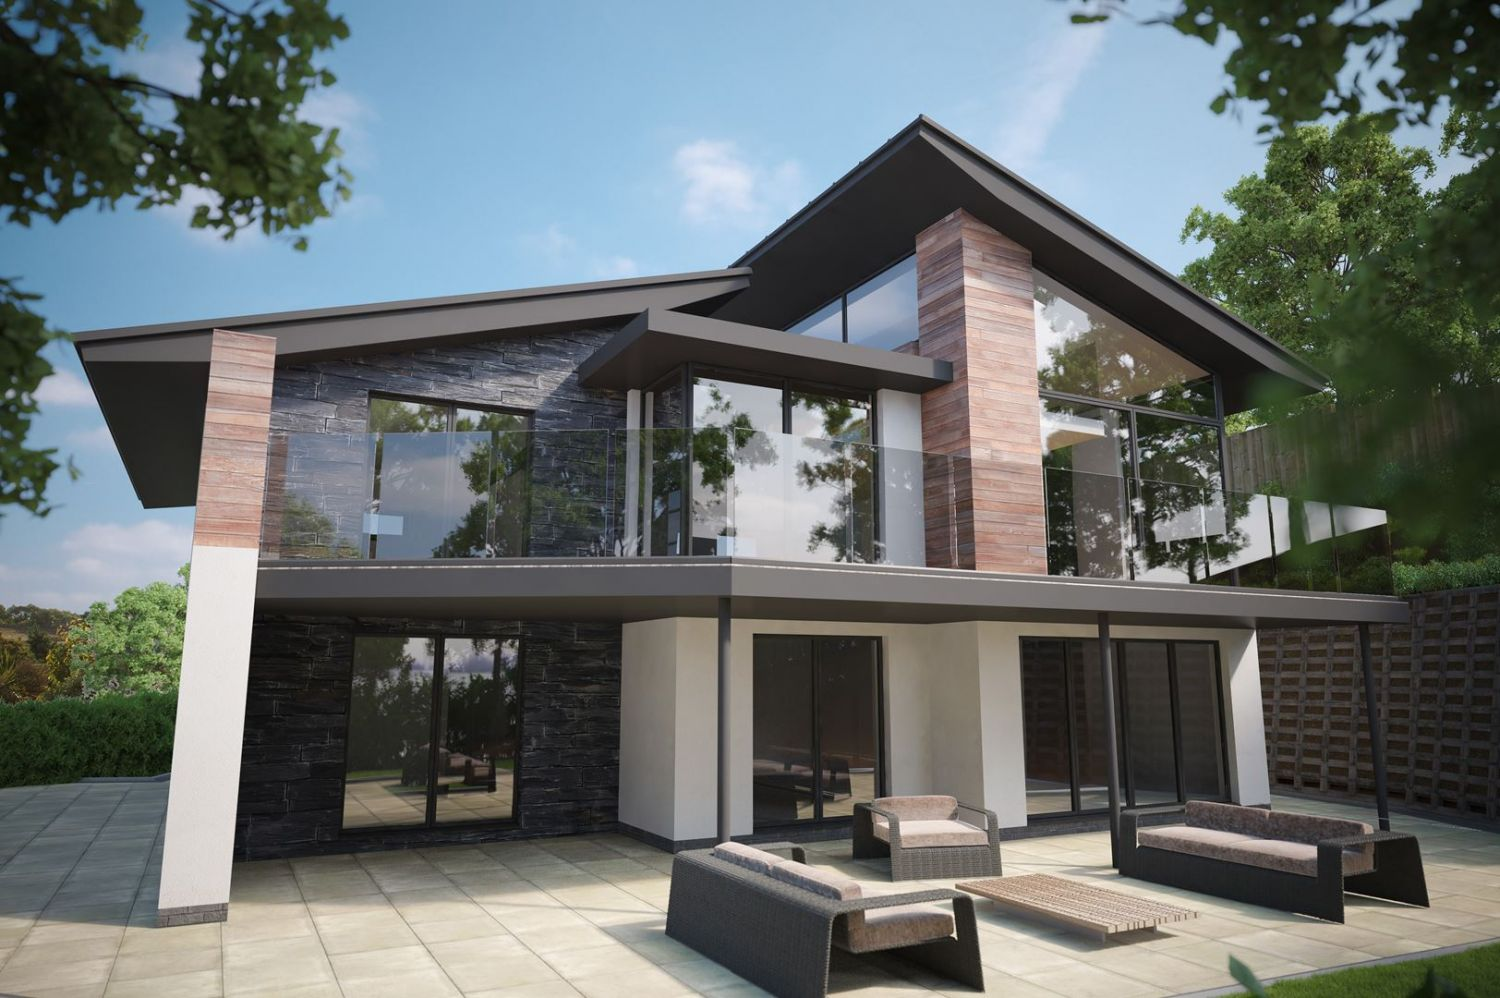 New builds llandudno conwy luxury house designer cheshire Contemporary home builder